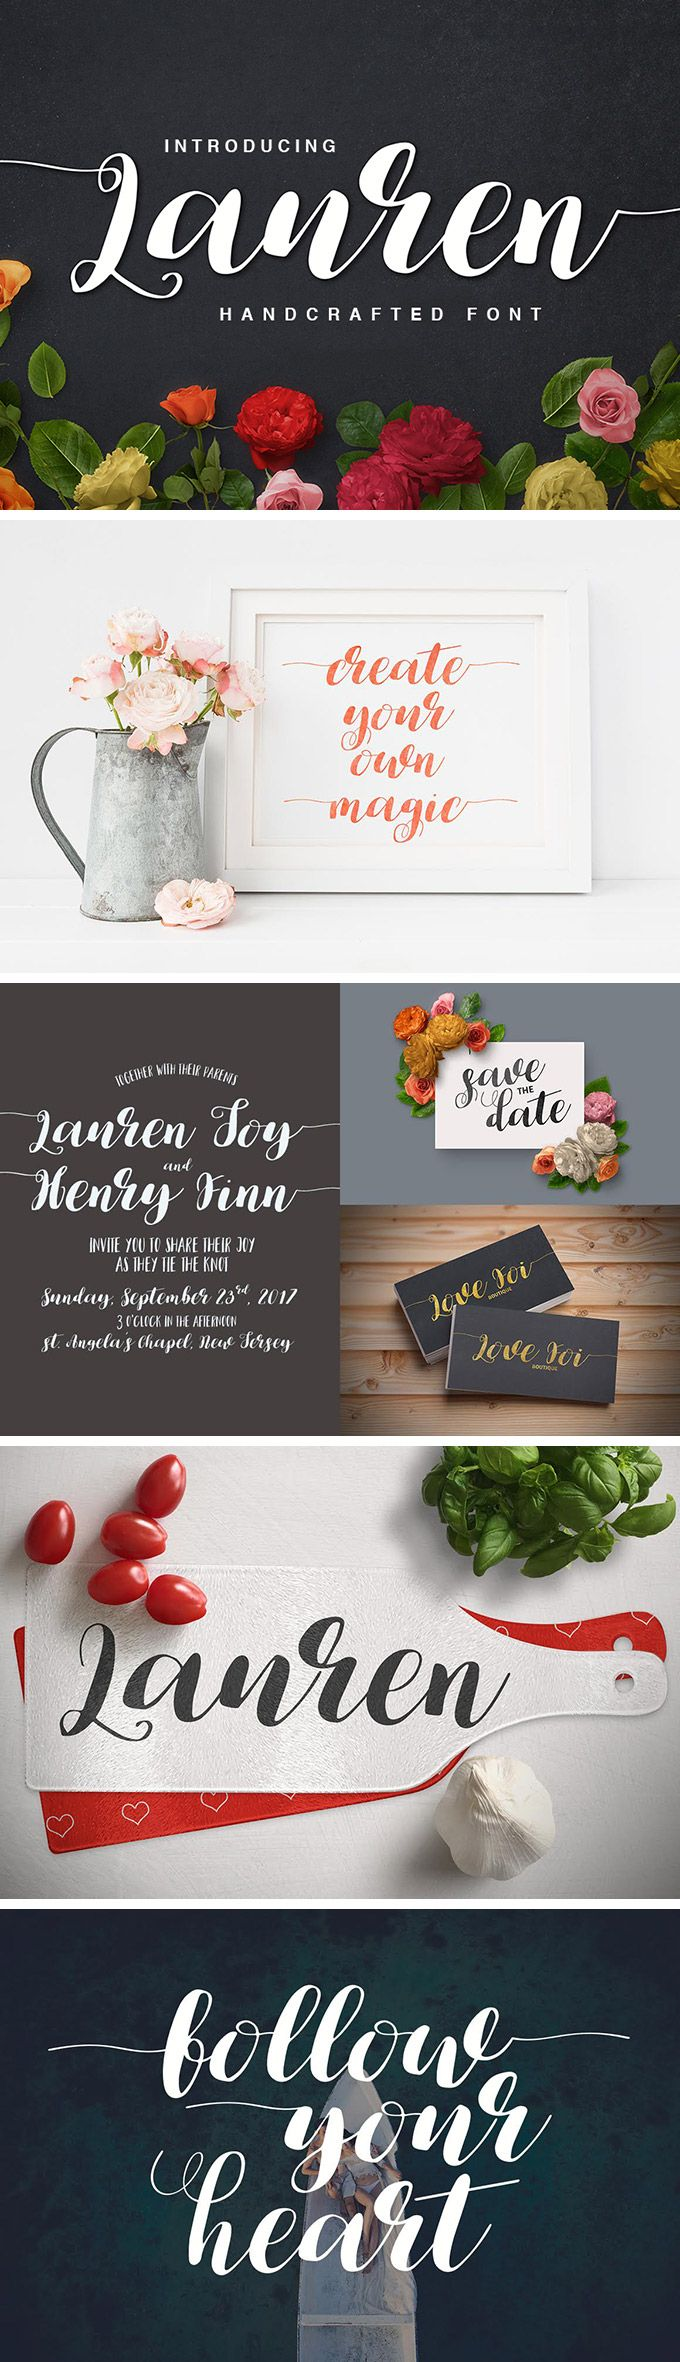 Lauren – Free Handcrafted Script Font which will give you rich stylistic alternates and ligatures via Open Type features. This calligraphy font comes in OTF, TTF, and Web Fonts formats. It is great for using in greeting cards, business cards, branding materials, quotes, posters, and much more!